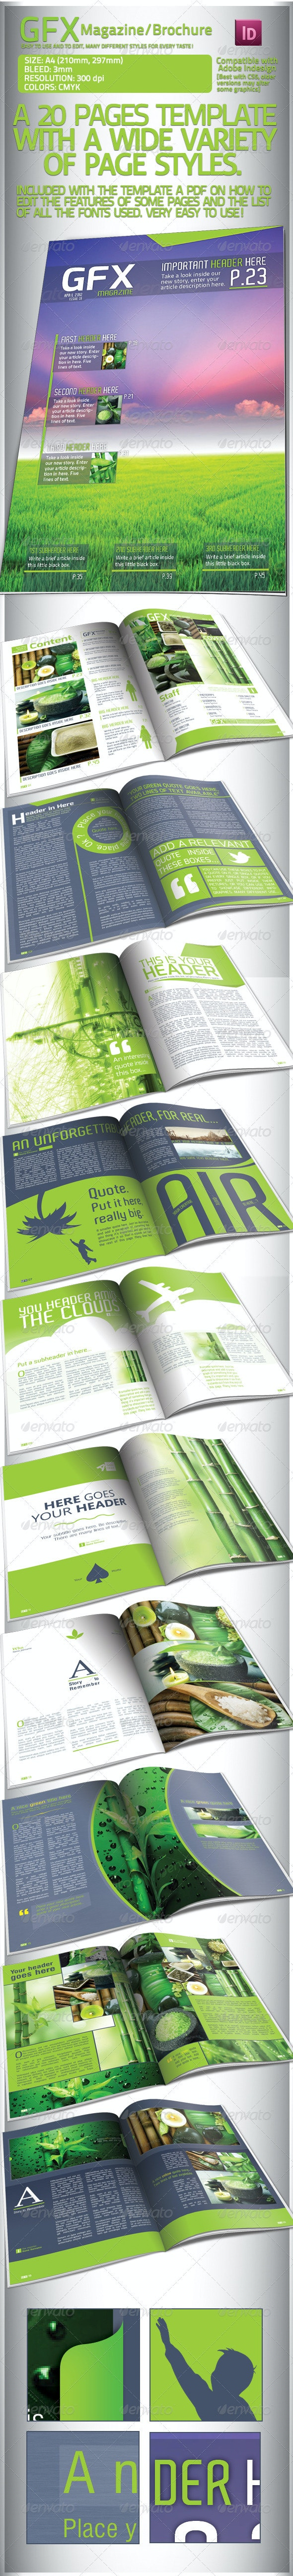 Clean Green Magazine/Brochure, 20 Pages - Magazines Print Templates